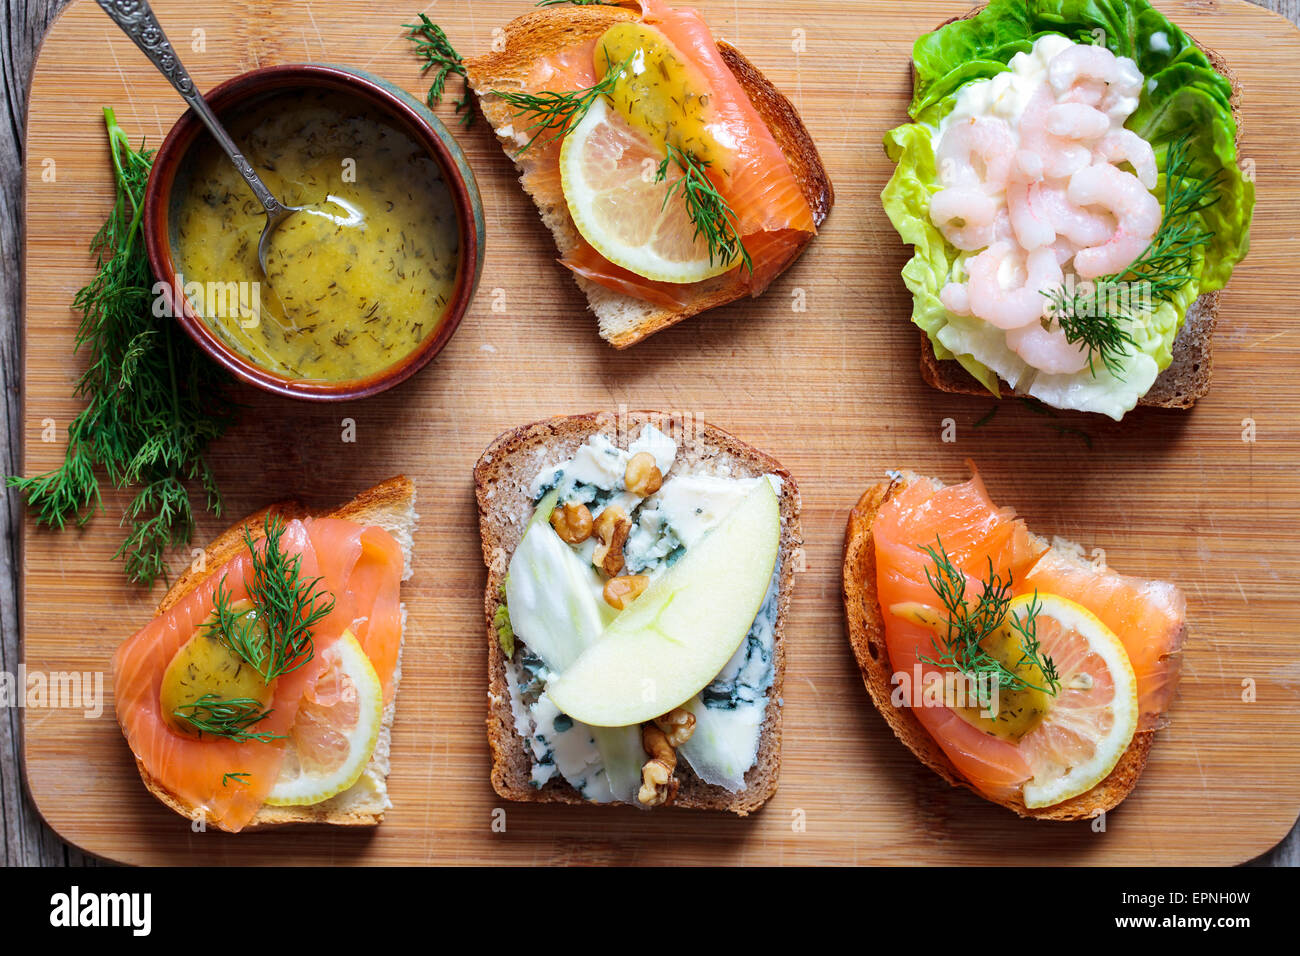 Selection of Scandinavian open sandwiches Stock Photo